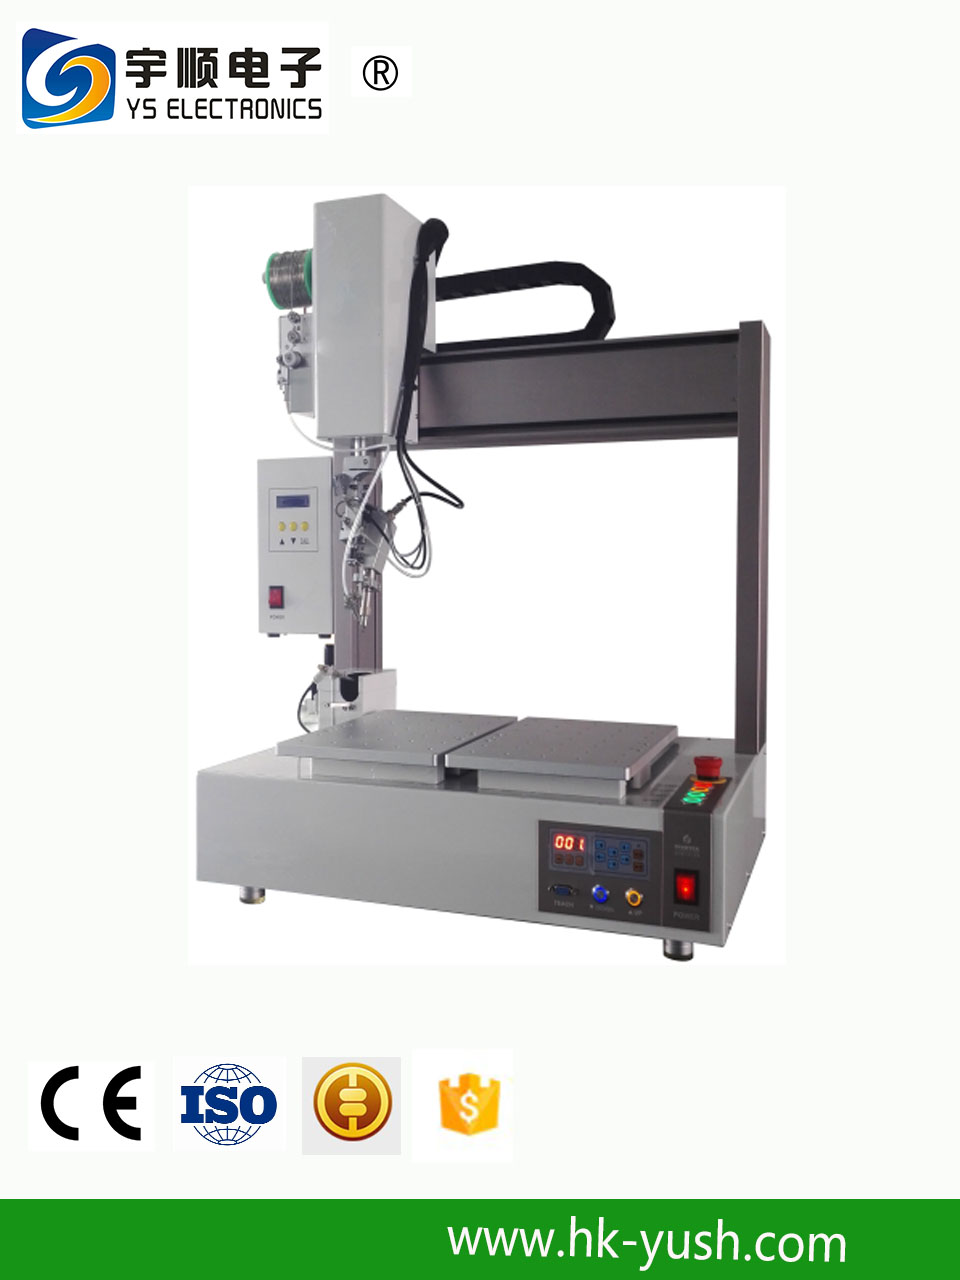 6 axis Desktop Automatic Solder welding Machine and robot with the function of spot welding and drag soldering China Manufacters